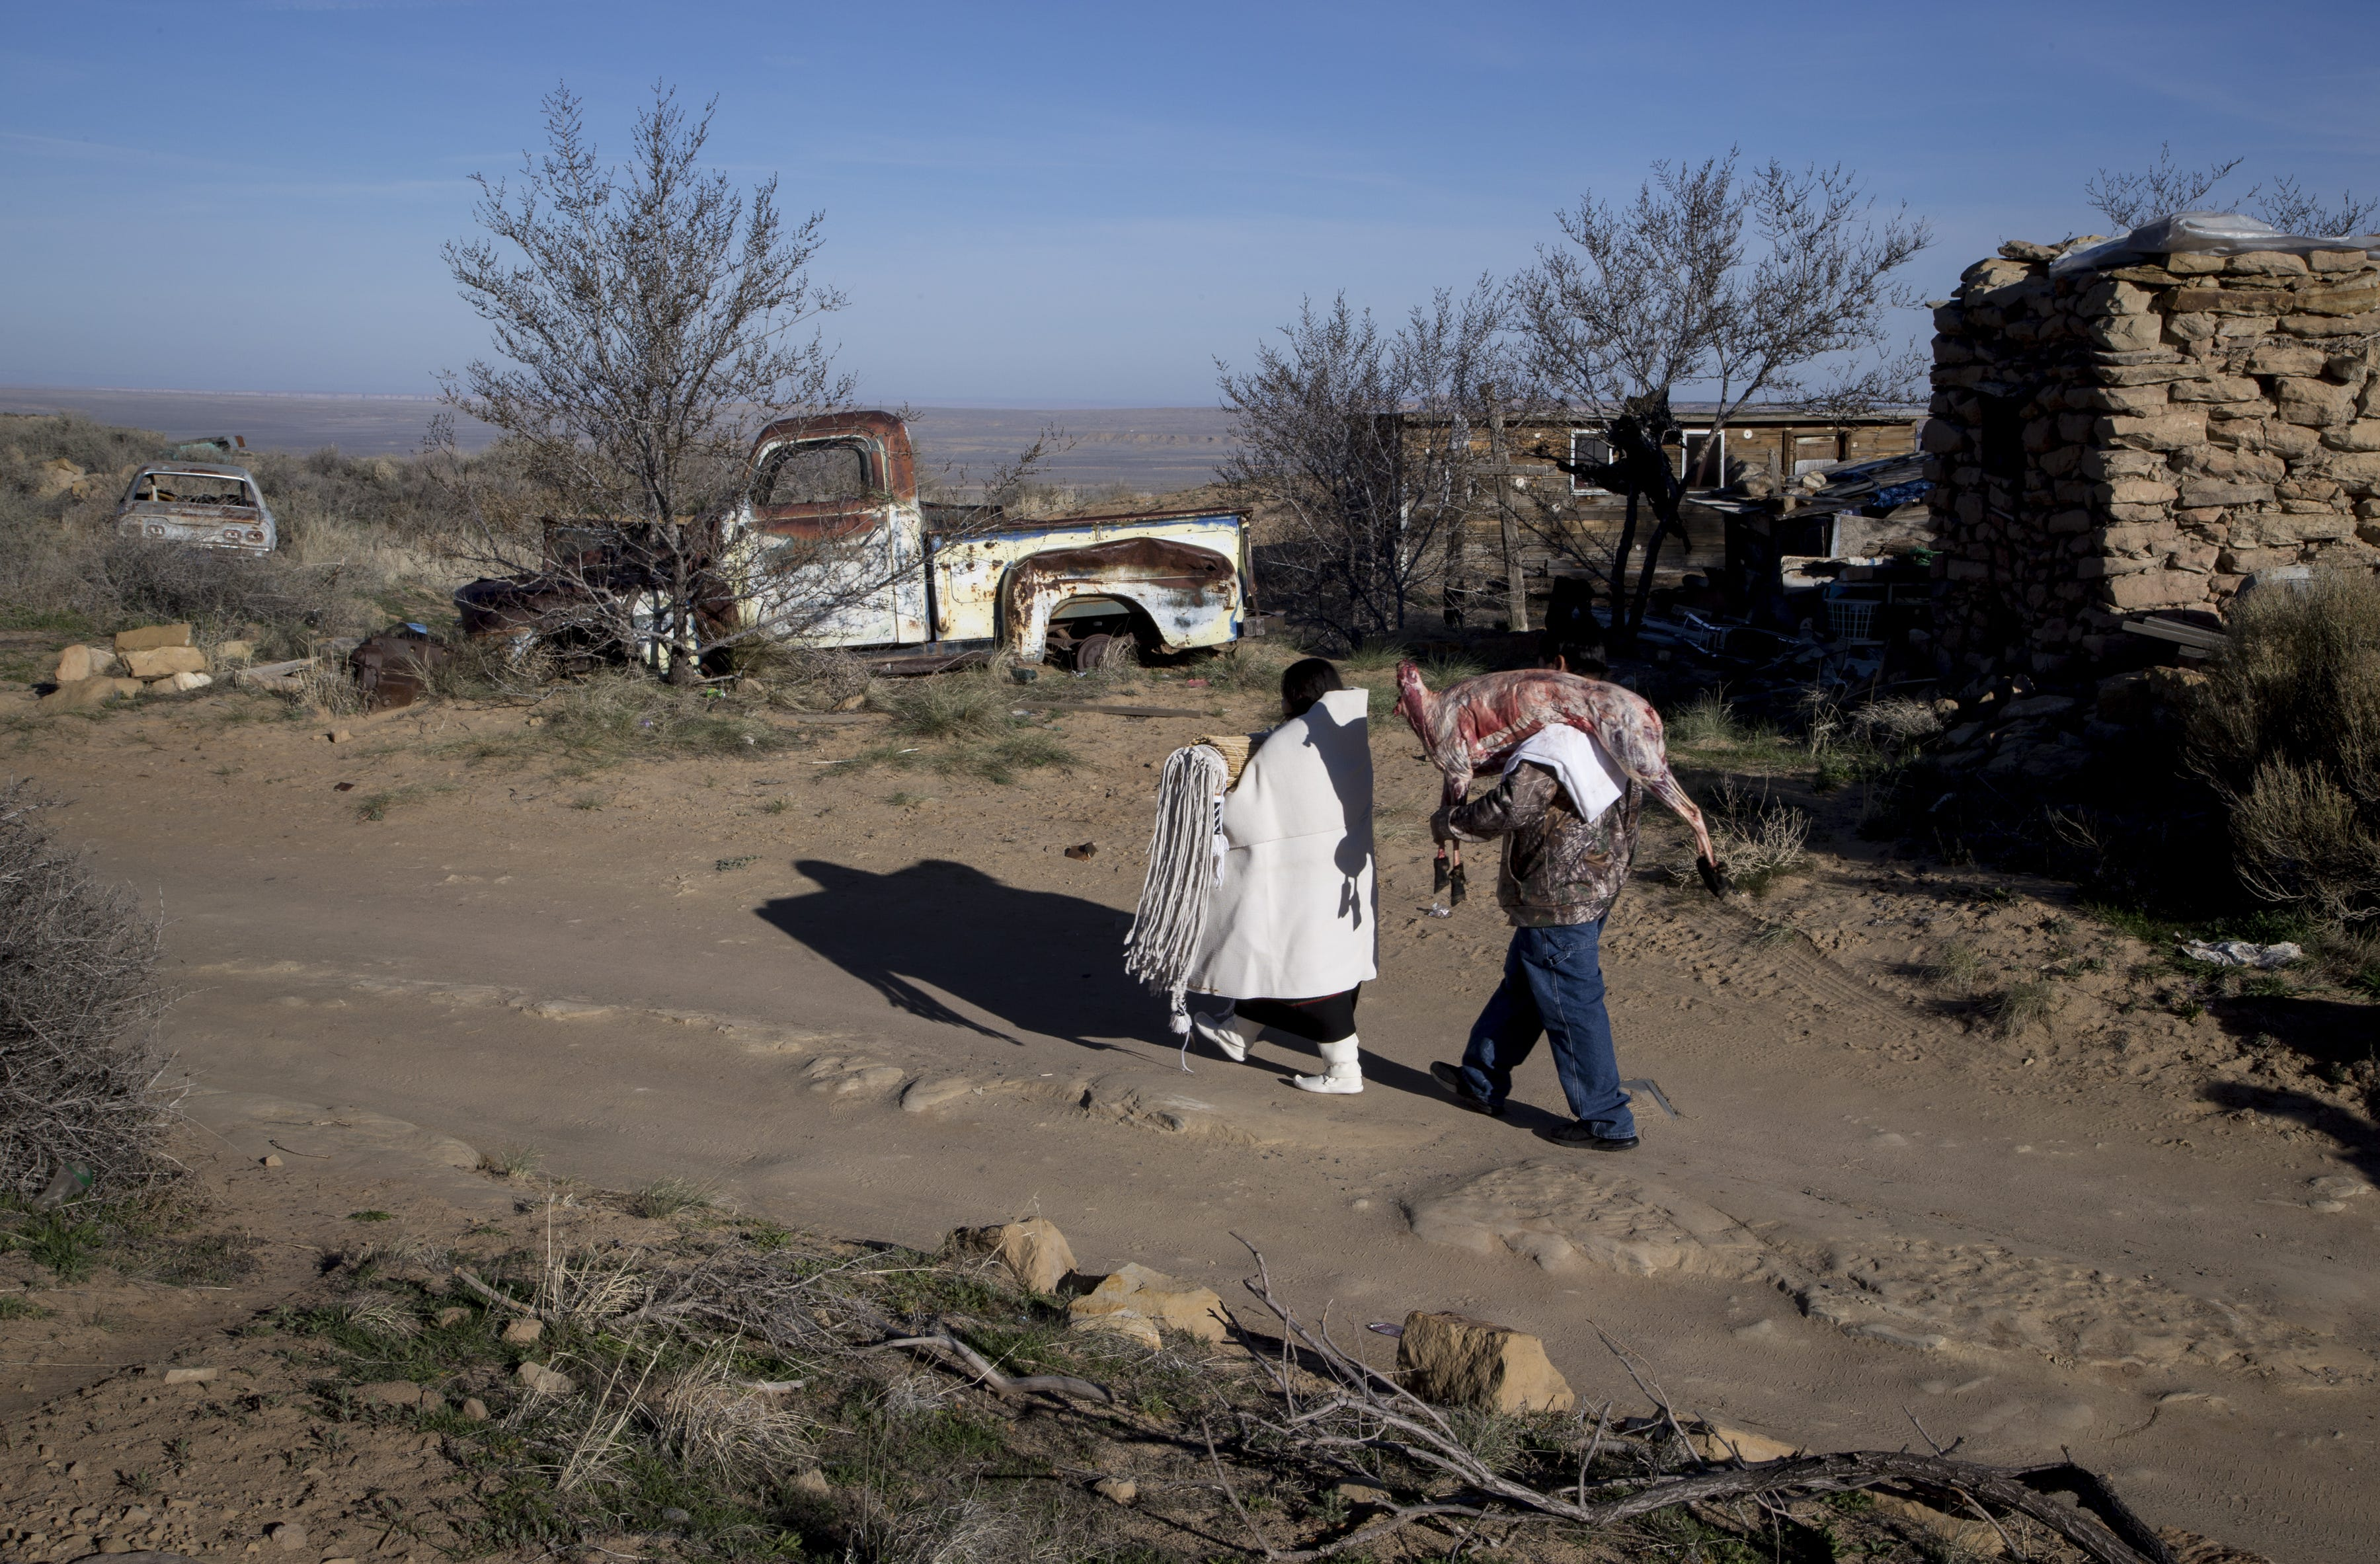 Wearing a black manta and a white cape, Kara walked up the road holding the bridal suitcase. Behind her, Lester carried a butchered sheep on March 28, 2019, in Hotevilla, Arizona.